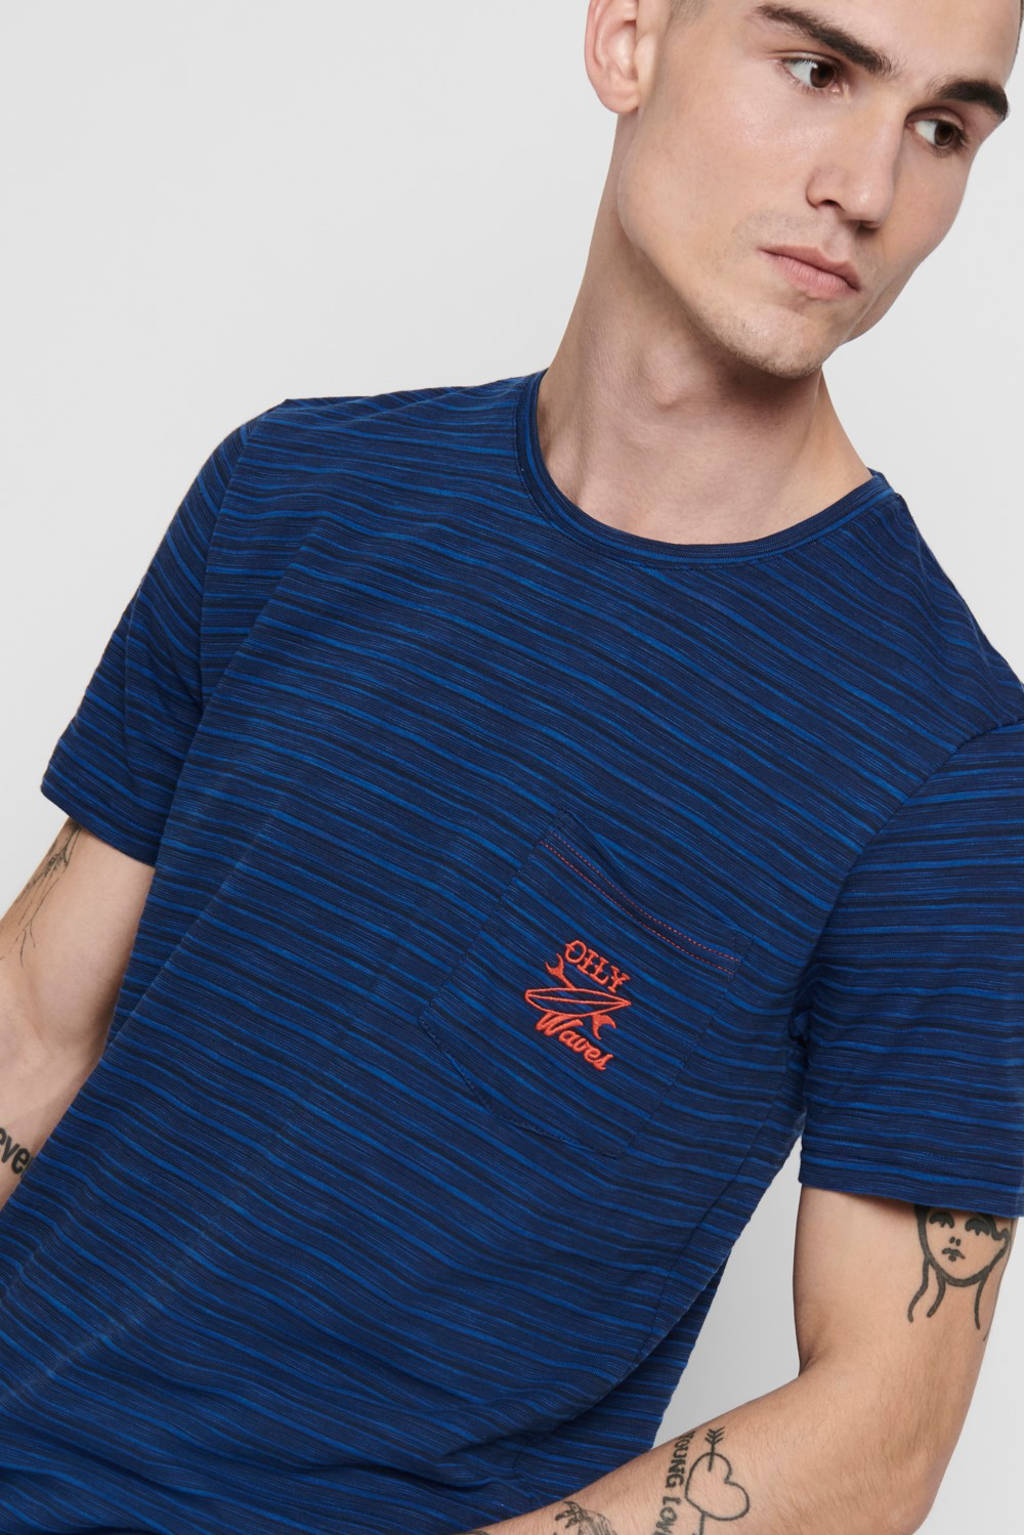 ONLY & SONS T-shirt met tekst donkerblauw, Donkerblauw